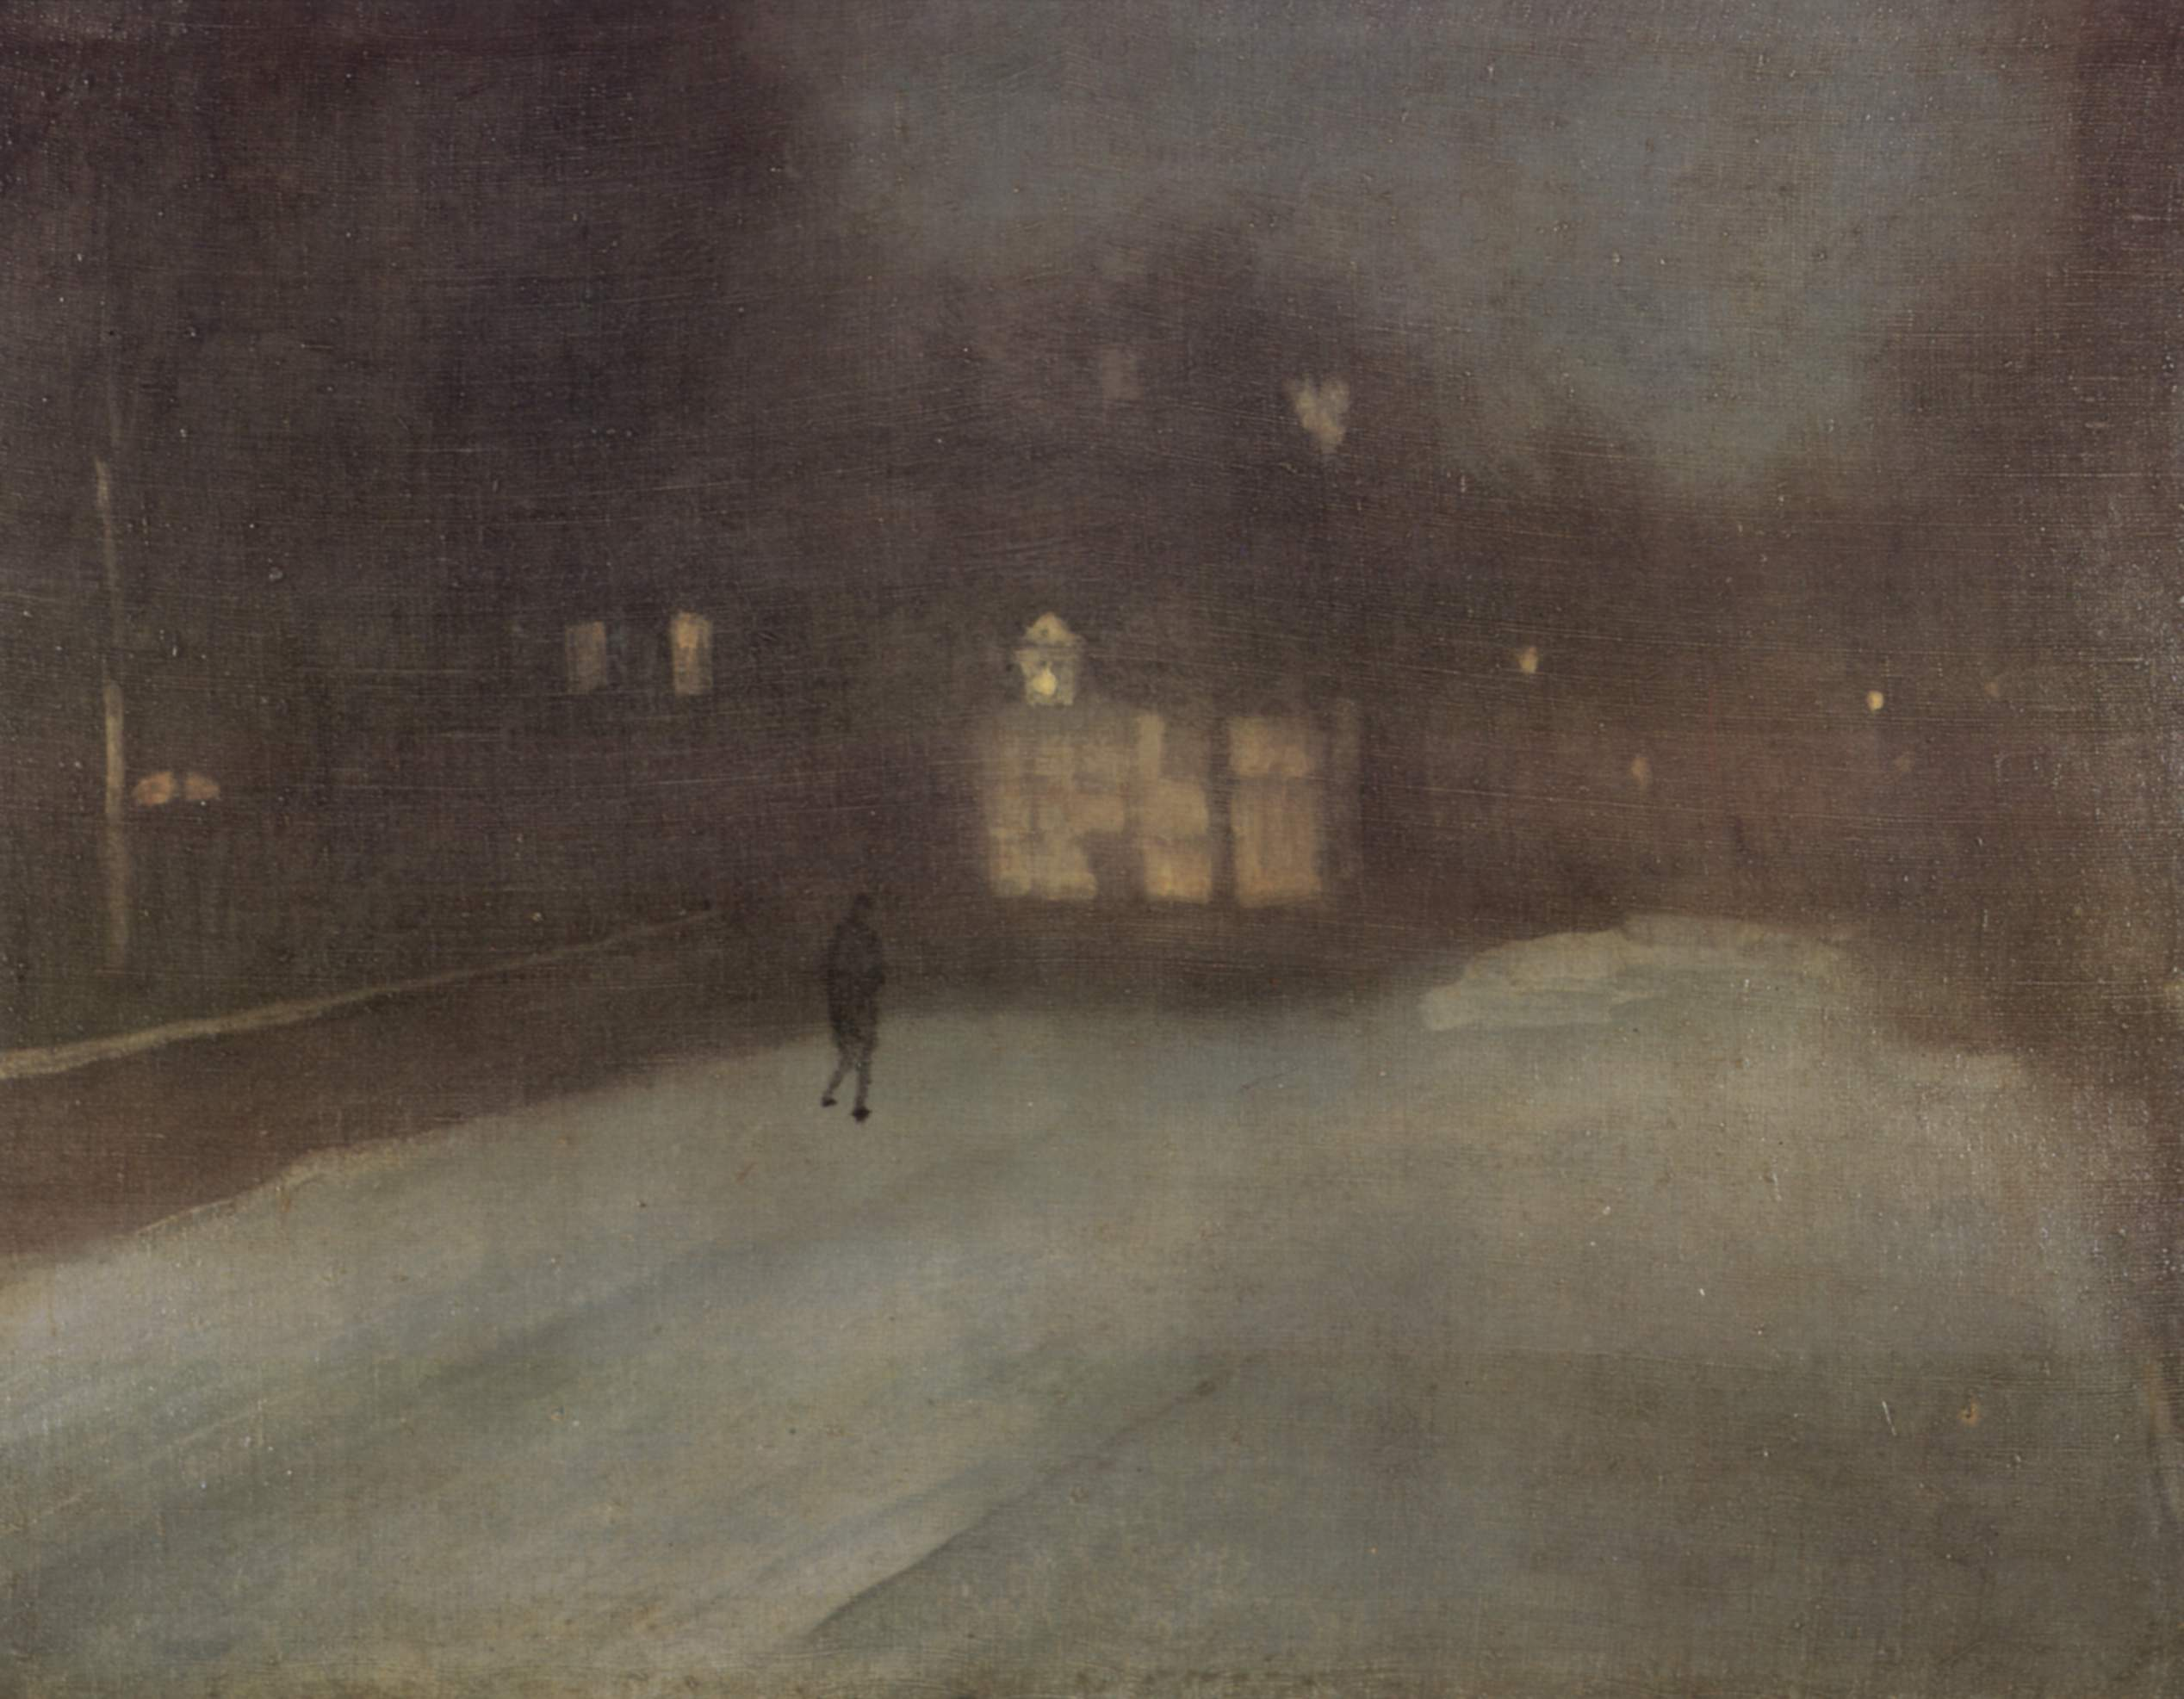 whistler paintings Finding a parallel between painting and music, whistler entitled many of his  paintings arrangements, harmonies, and nocturnes, emphasizing the  primacy of.